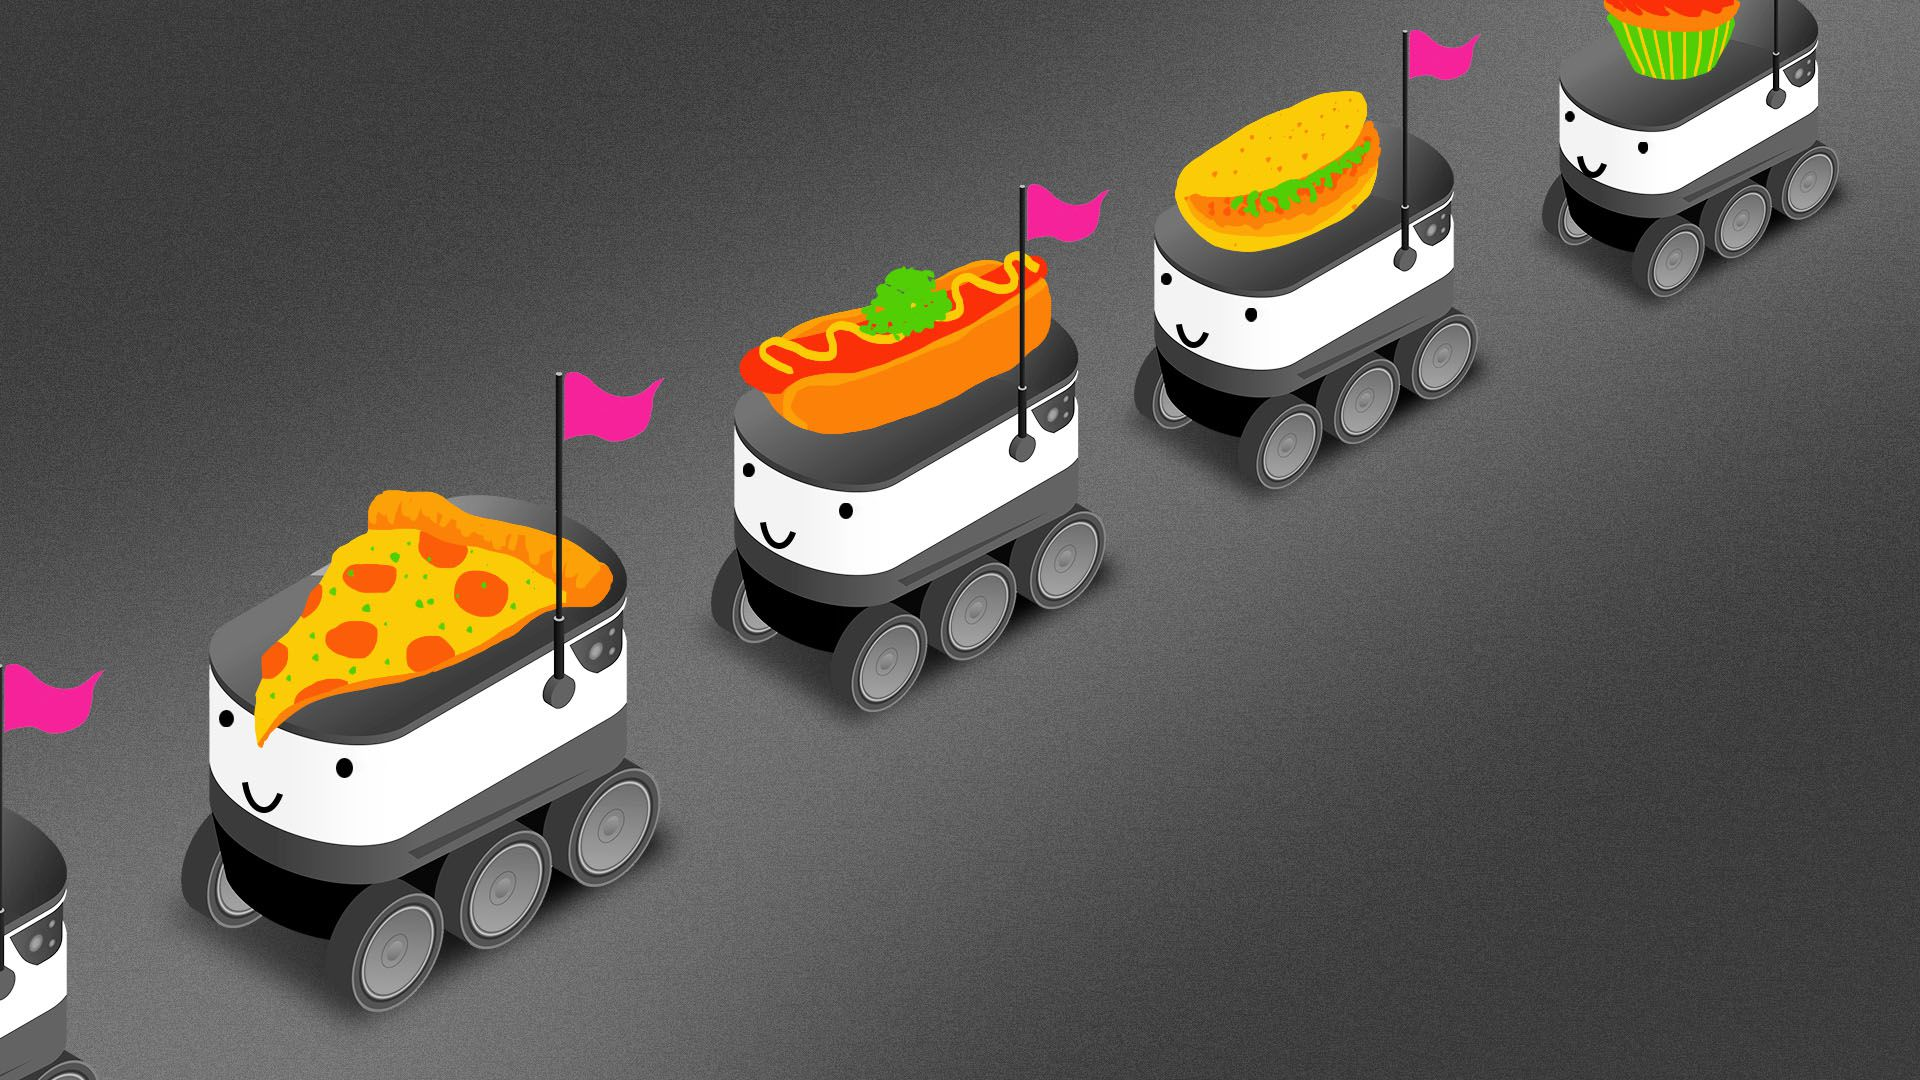 College students may soon encounter food delivery robots - Axios